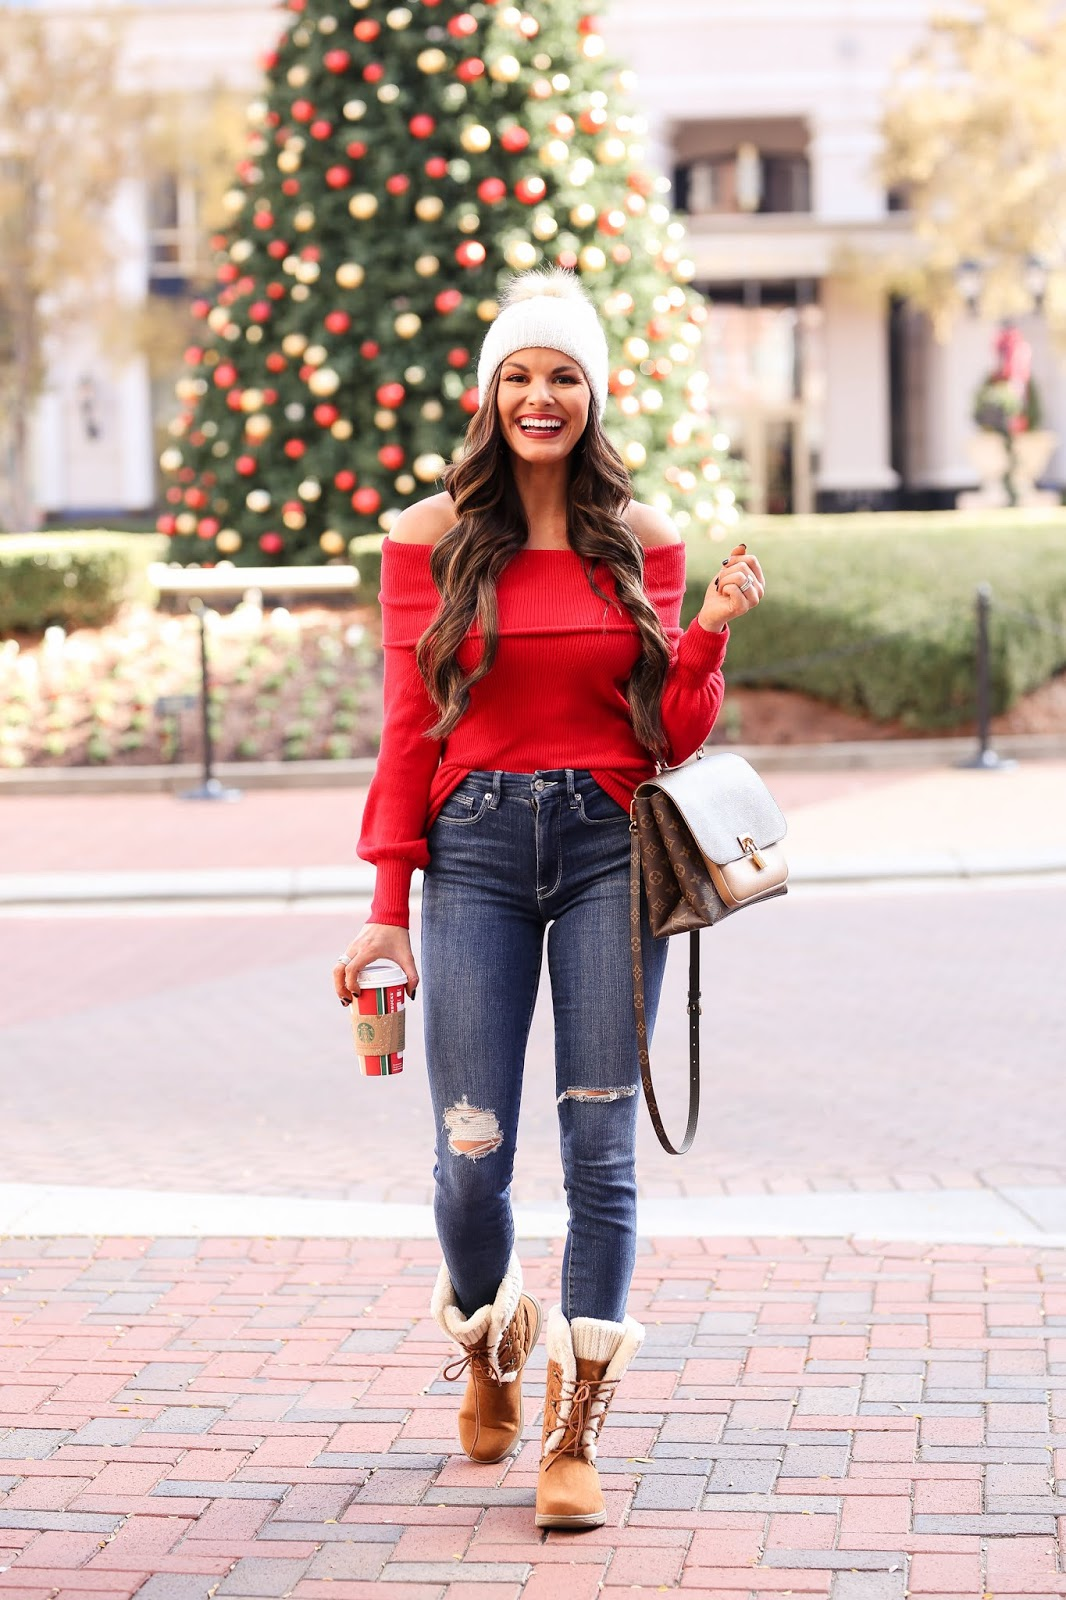 a905f8b54a8c5 Holiday Look with JCPenney | Mumu and Macaroons